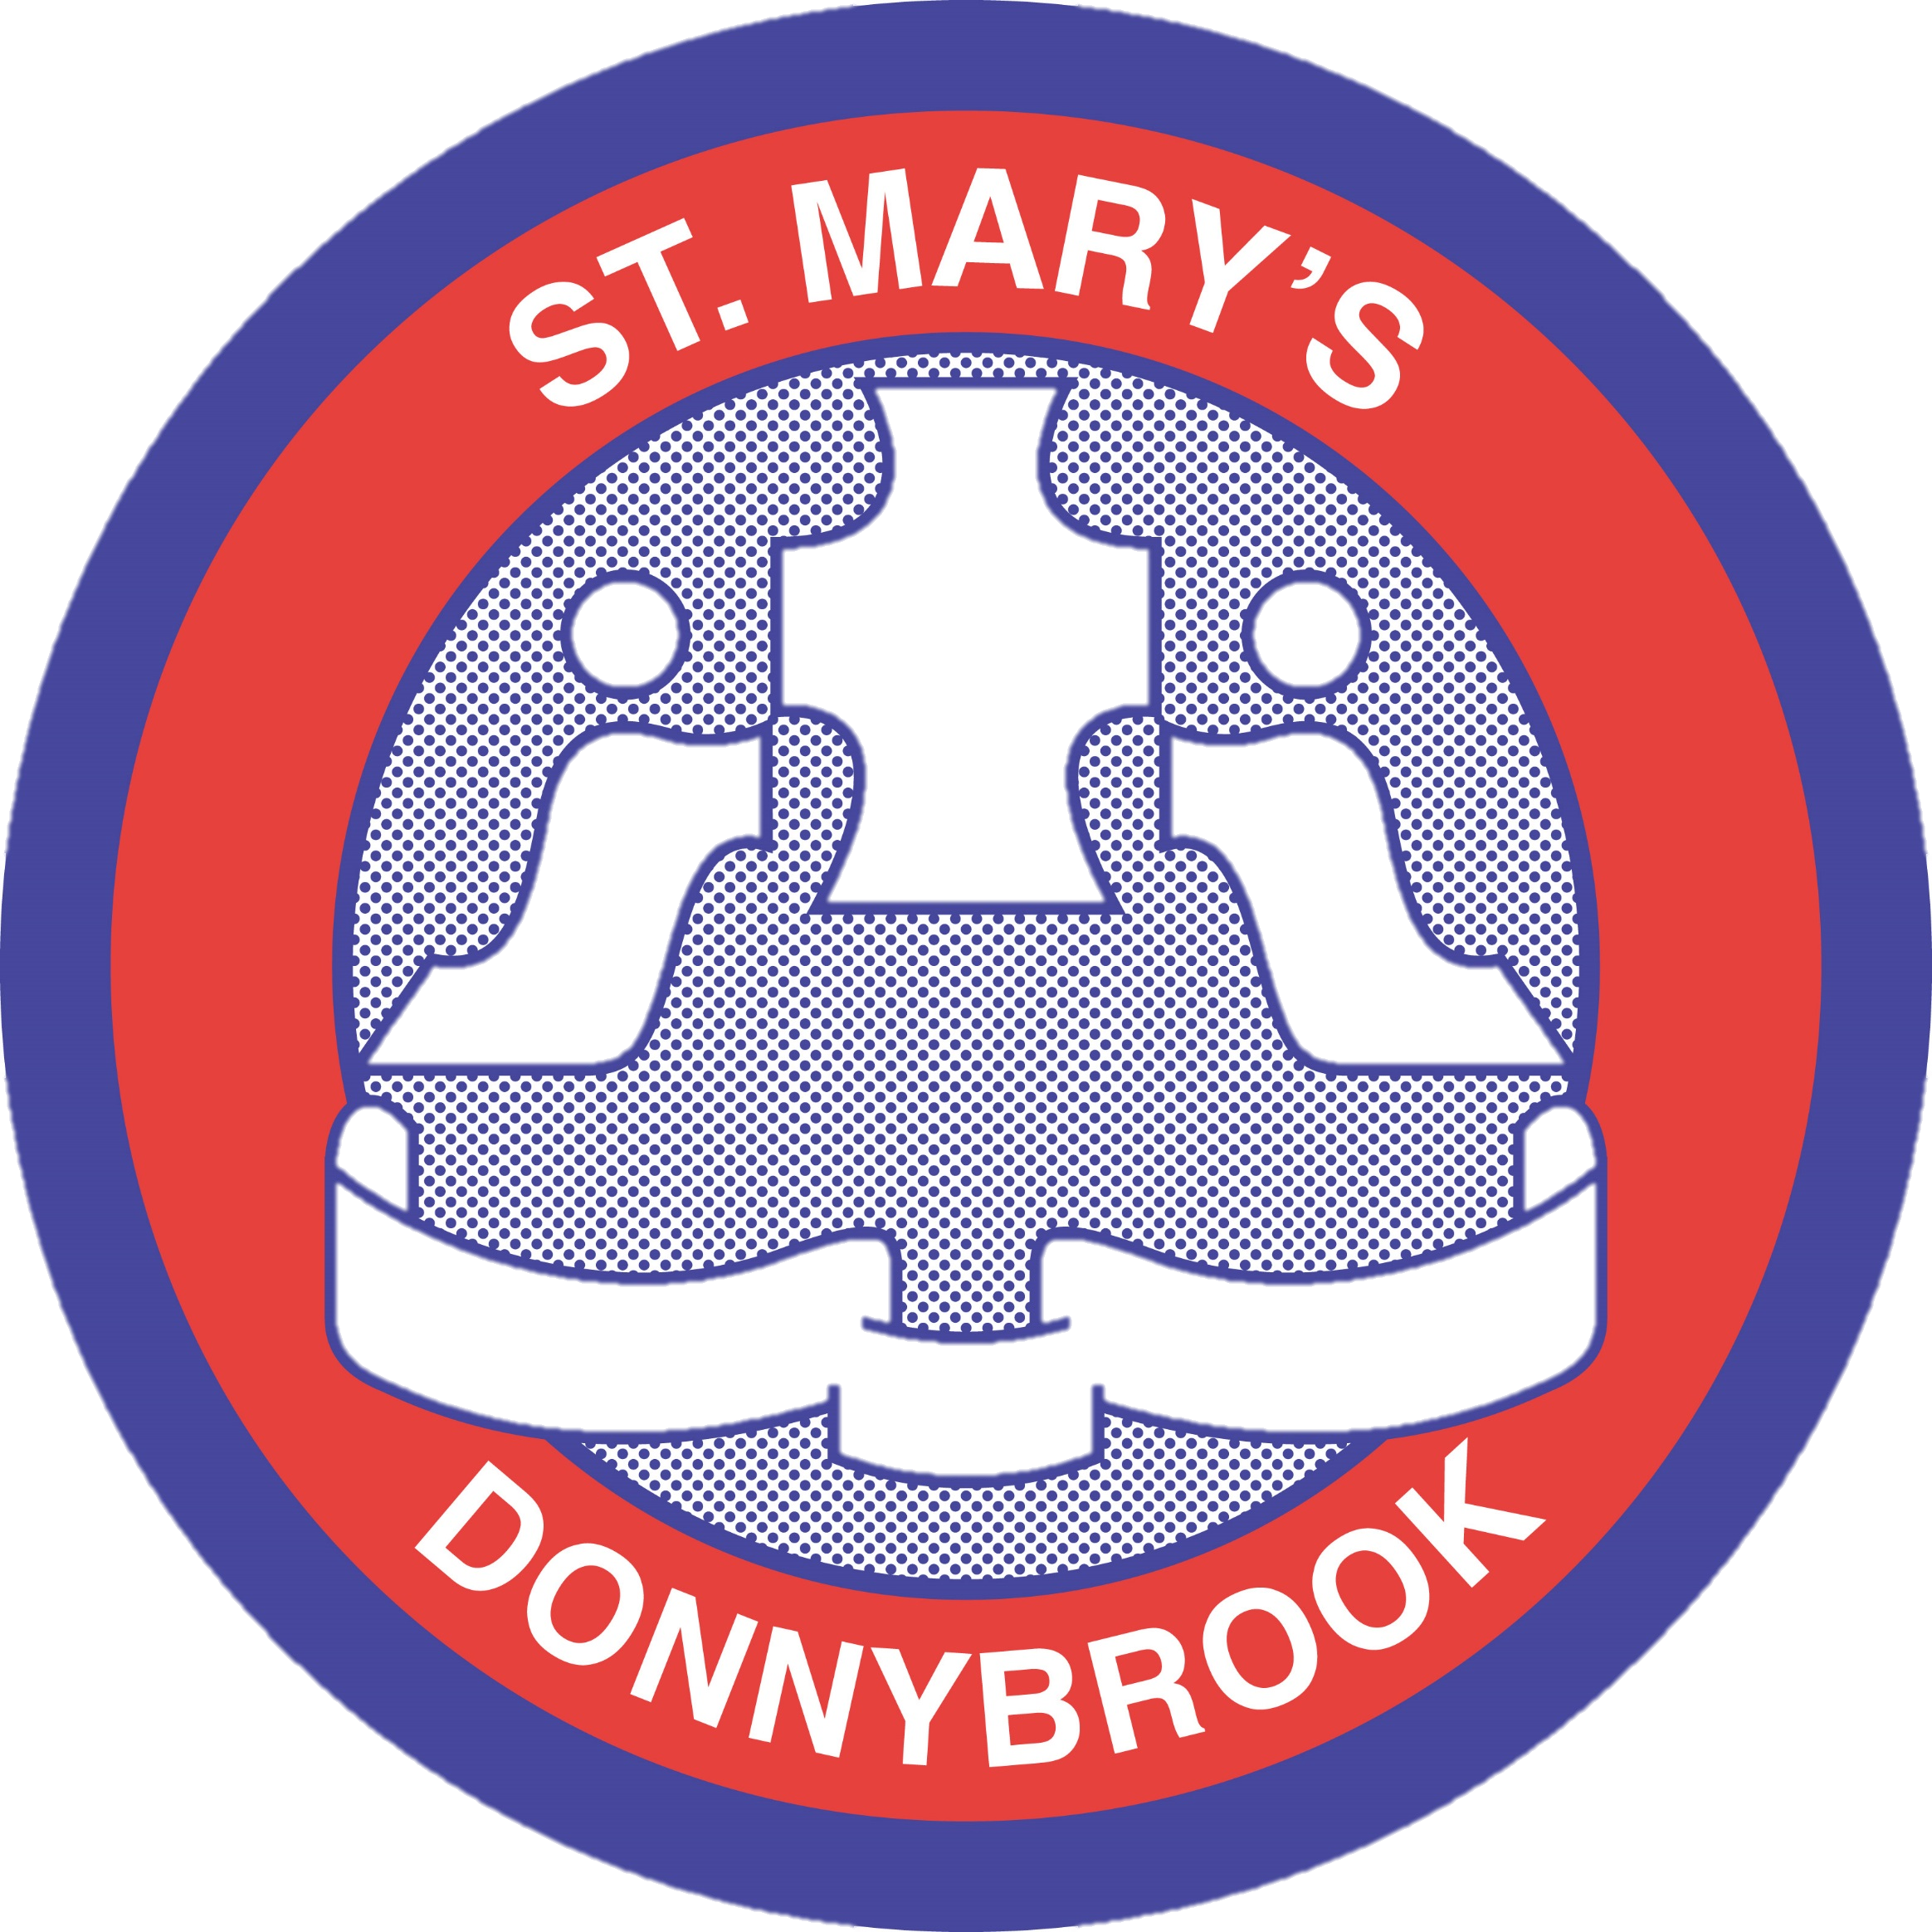 St Marys Primary School Donnybrook